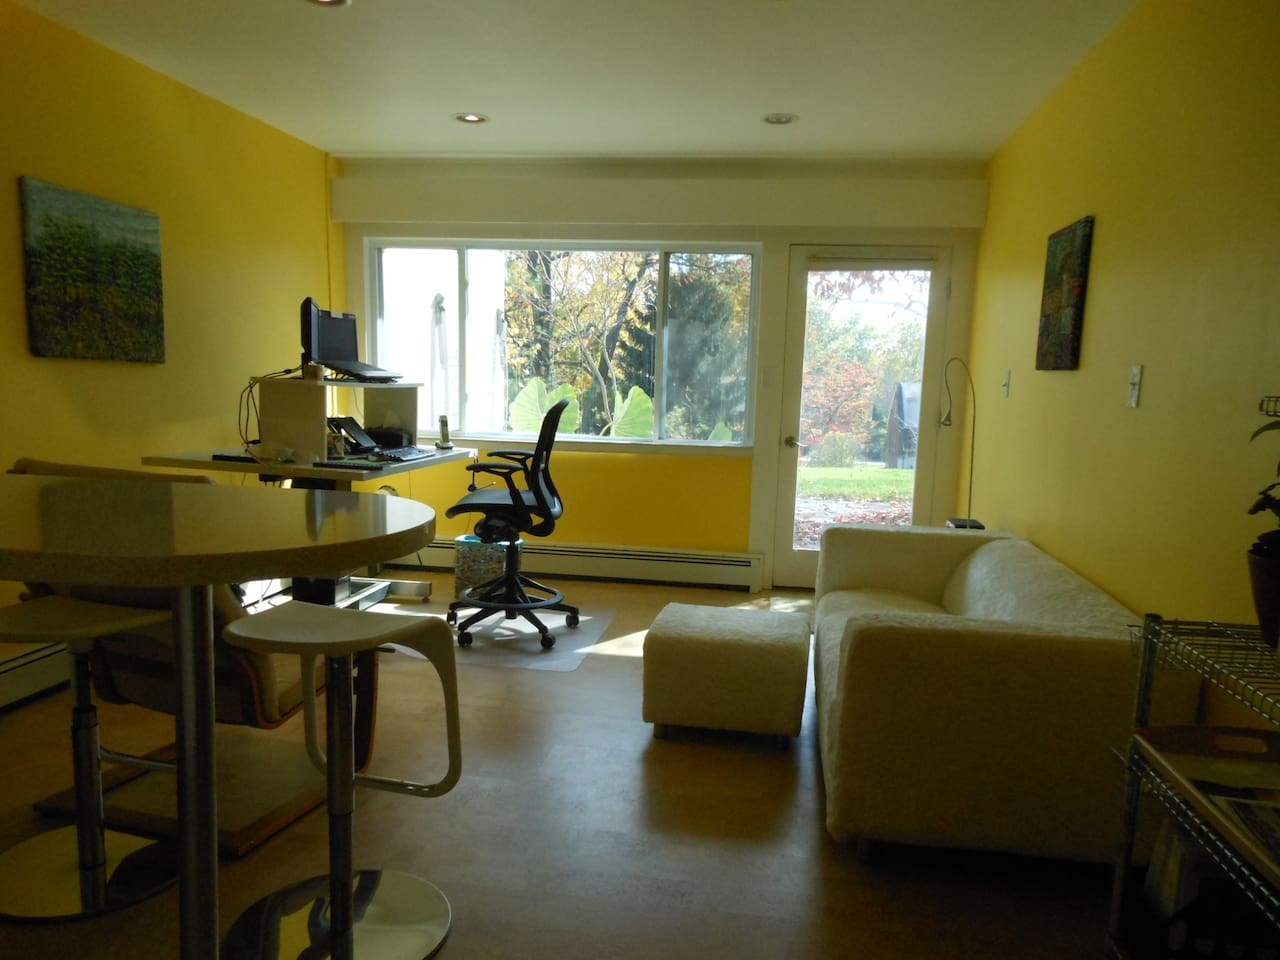 Living space has standup or sit down large desk. High speed internet wired and wifi but no TV.